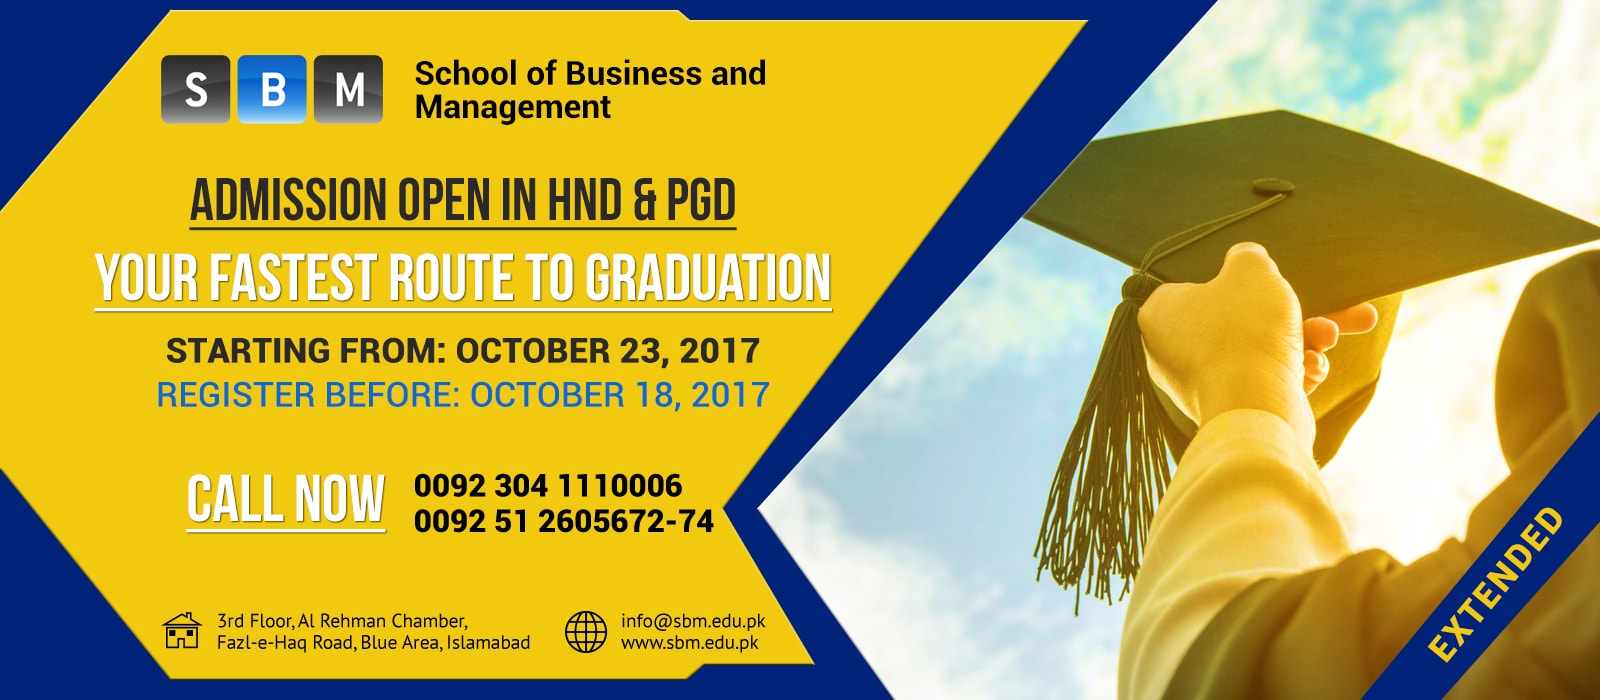 HND & PGD classes starting from 23 Oct